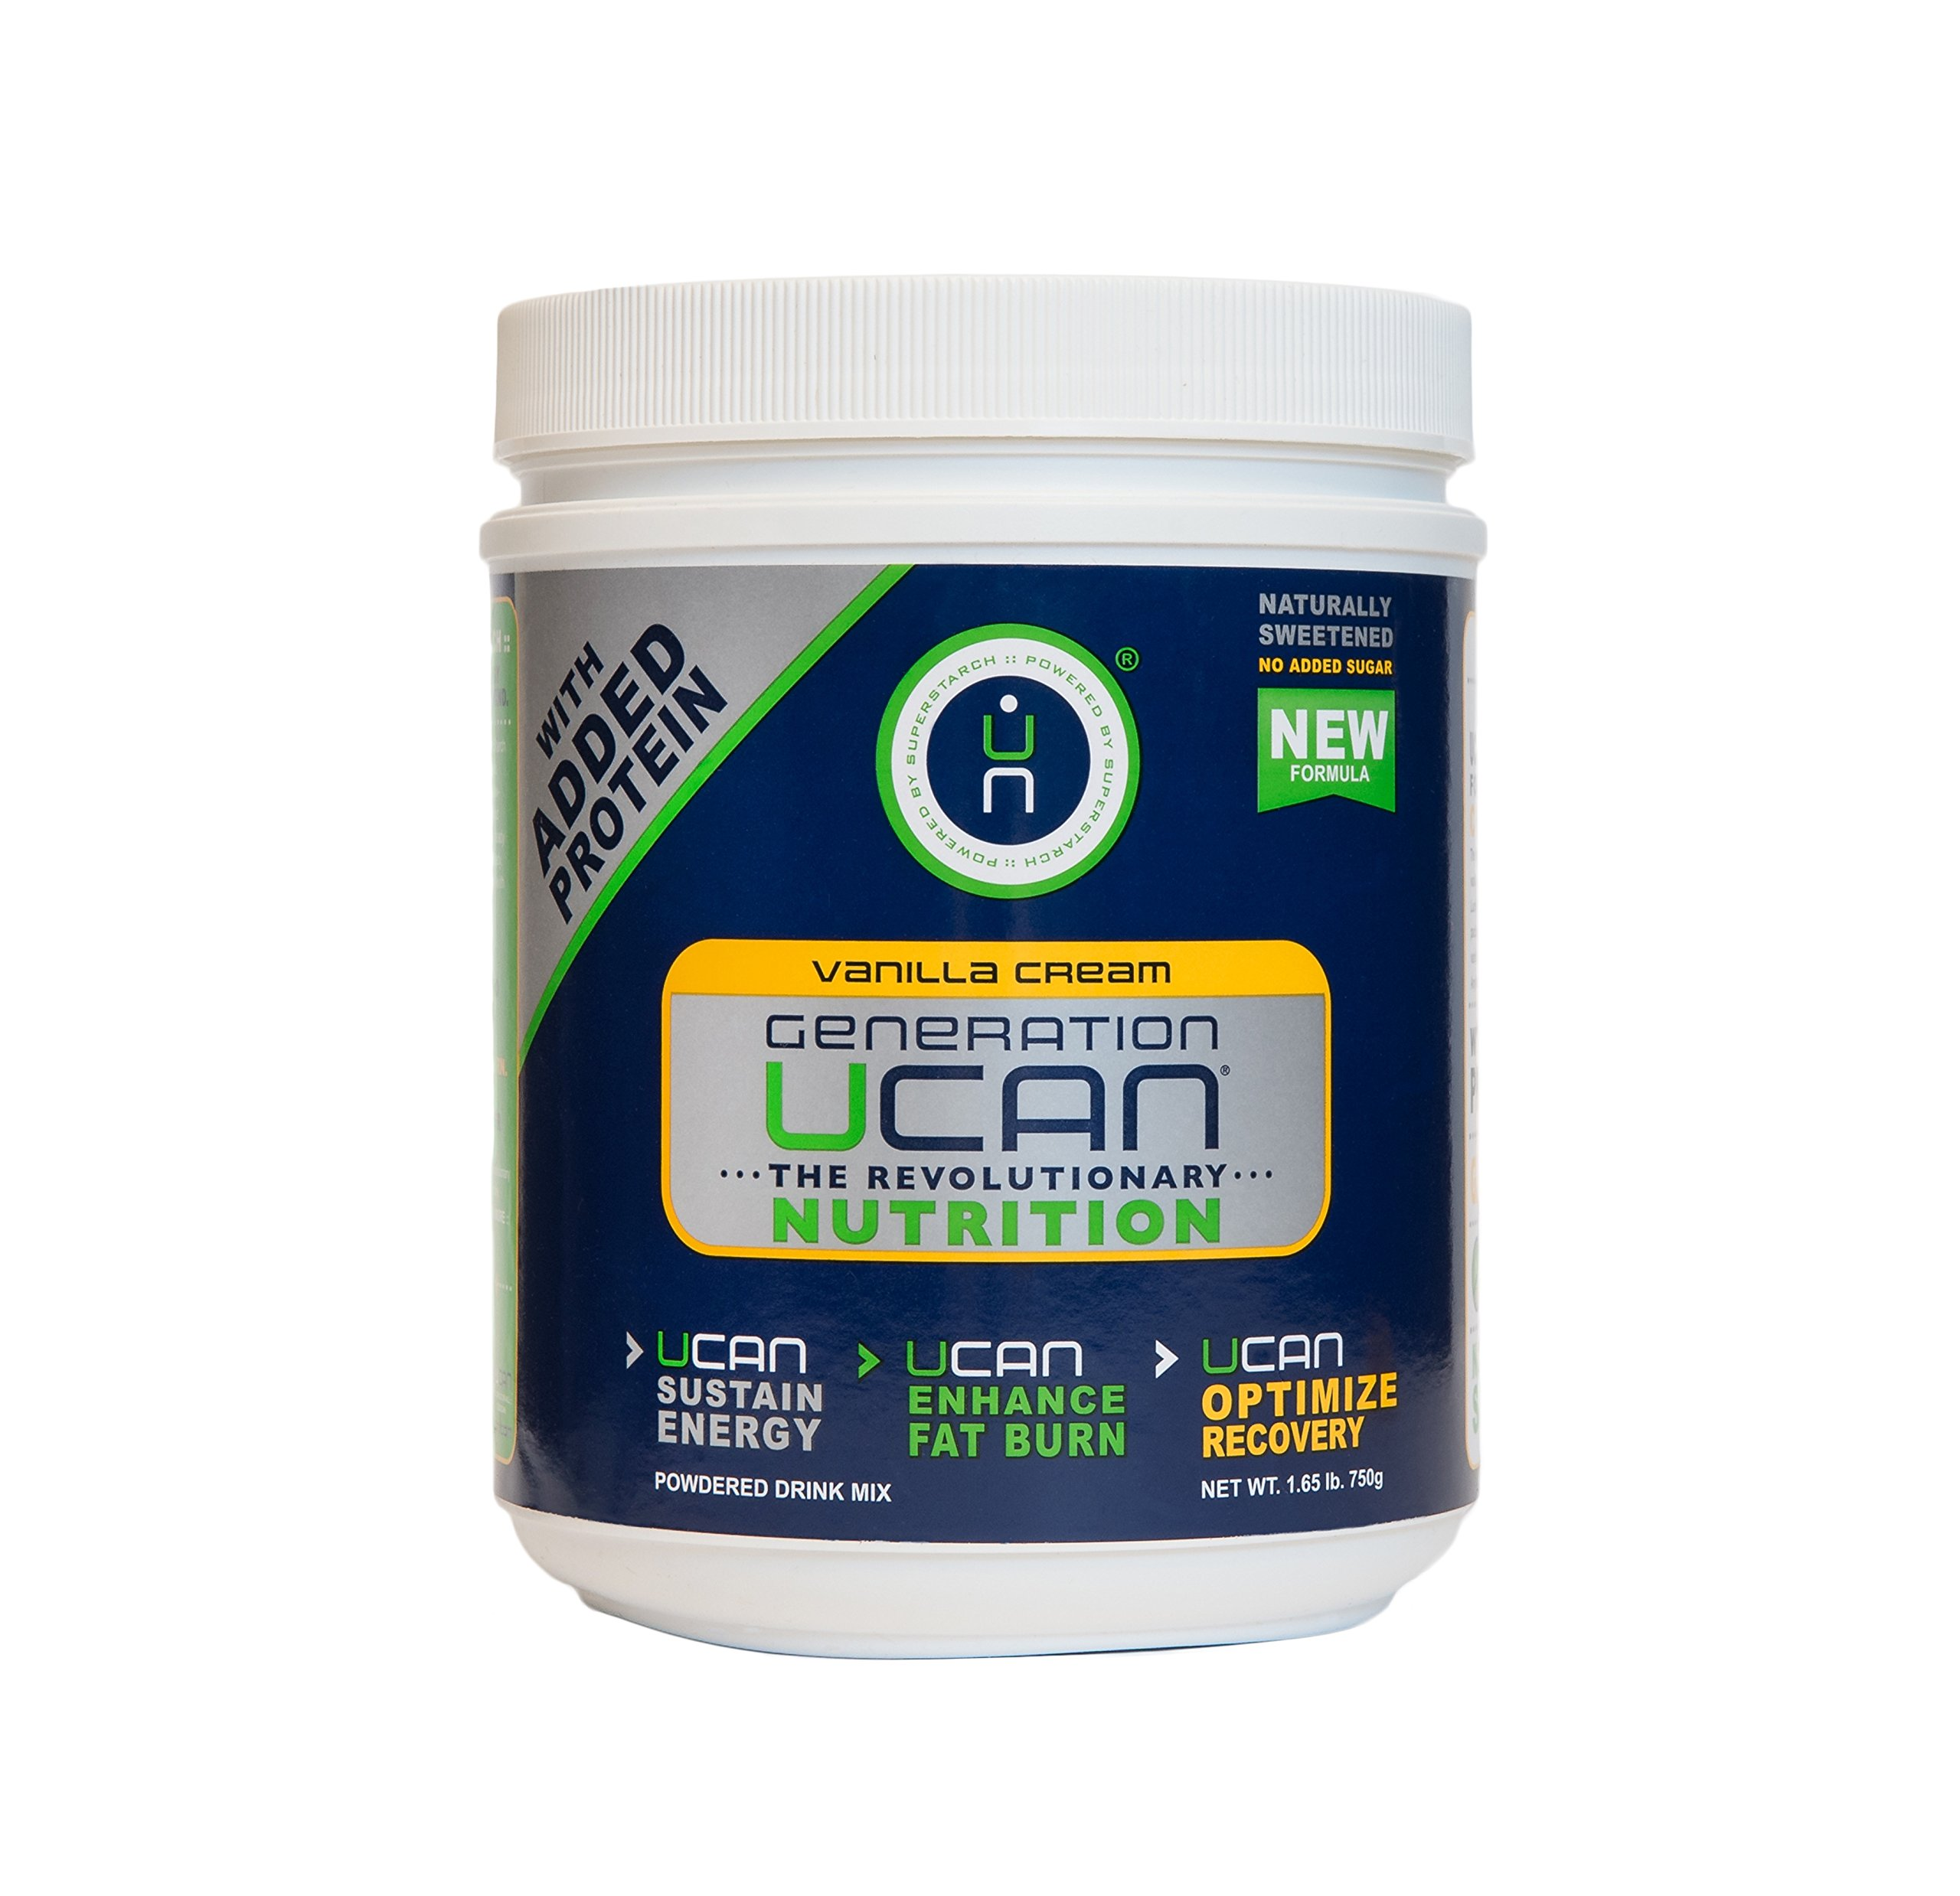 Generation UCAN SuperStarch ® Protein Drink Mix Tub, Vanilla Cream, No Added Sugar, Gluten-Free, Naturally Sweetened, 26.5 Ounces, 25 Servings